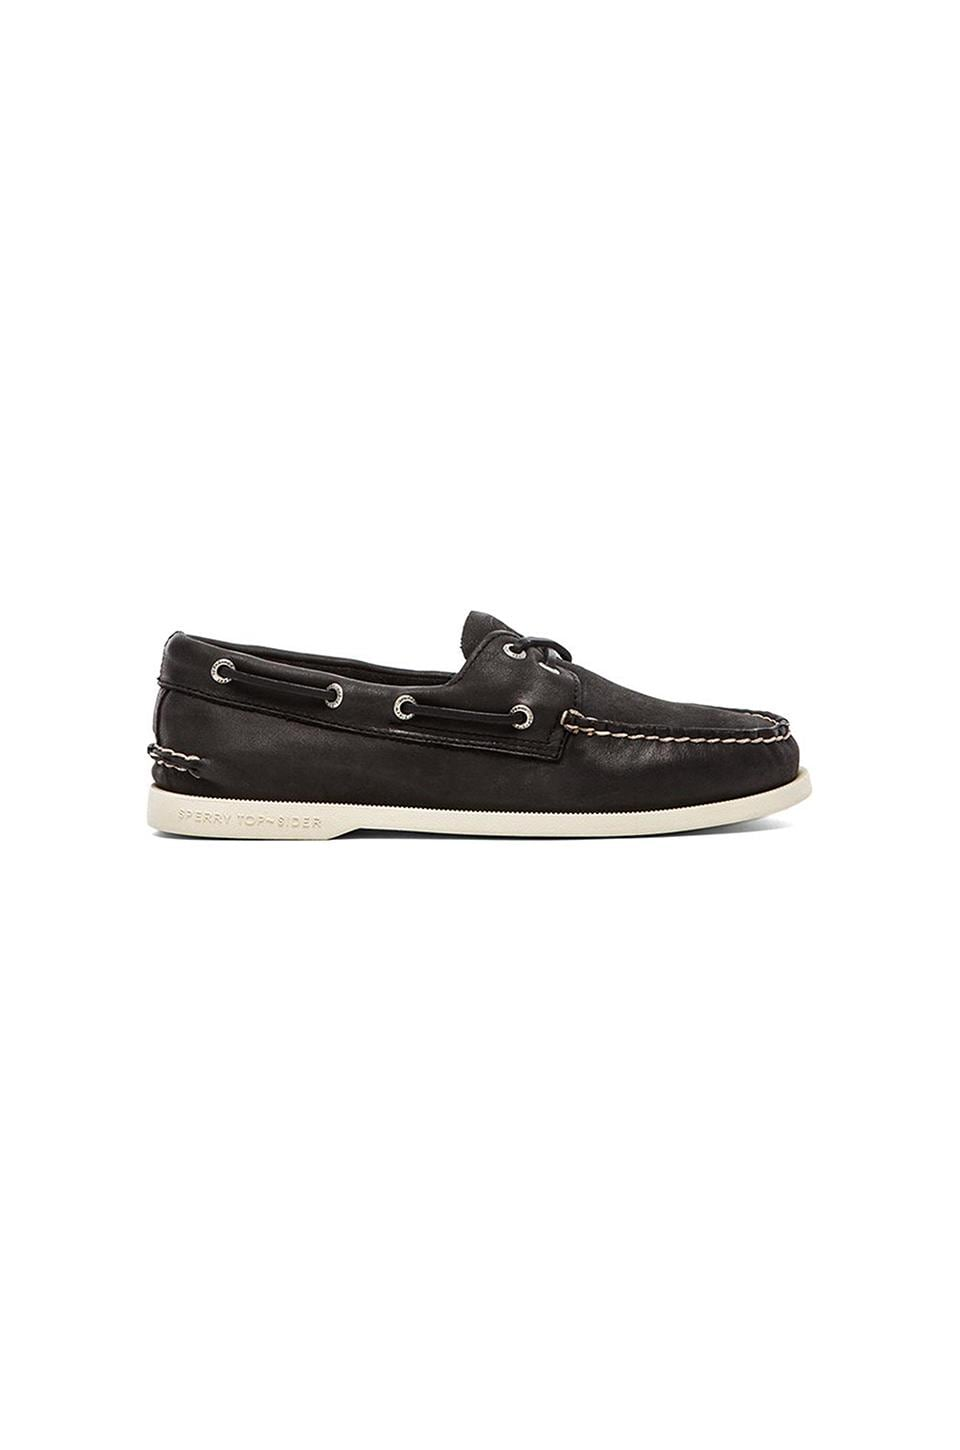 Sperry Top-Sider Cloud Collection A/O 2-Eye in Black Relaxed Leather